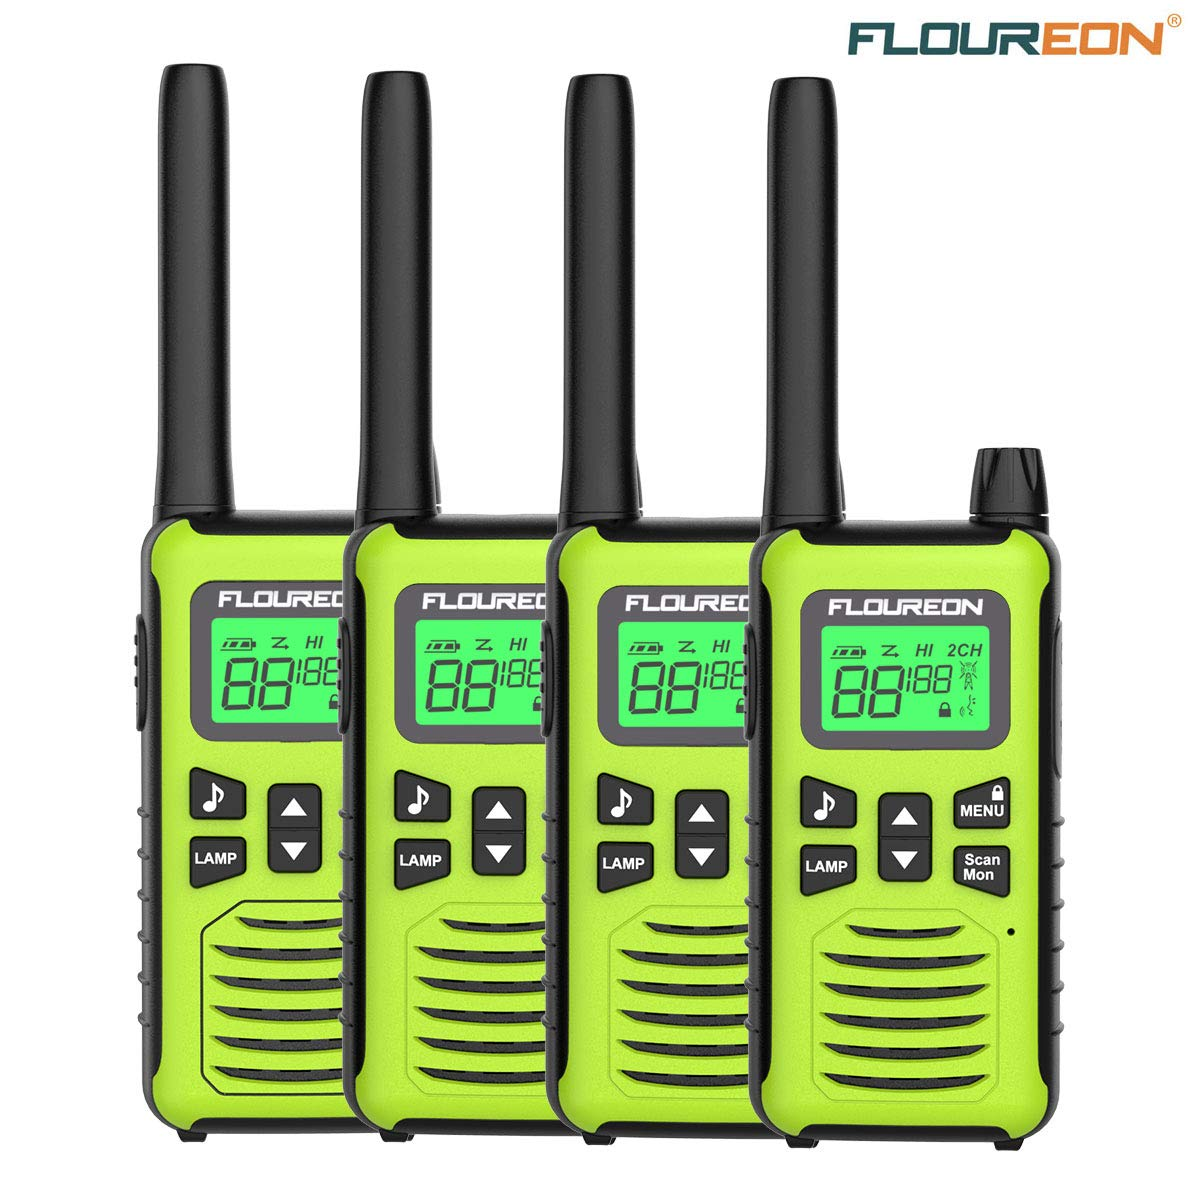 FLOUREON 4 Packs Walkie Talkies Two Way Radios 22 Channel 3000M (MAX 5000M  Open Field) Long Range Handheld Talkies Talky (Yellow)